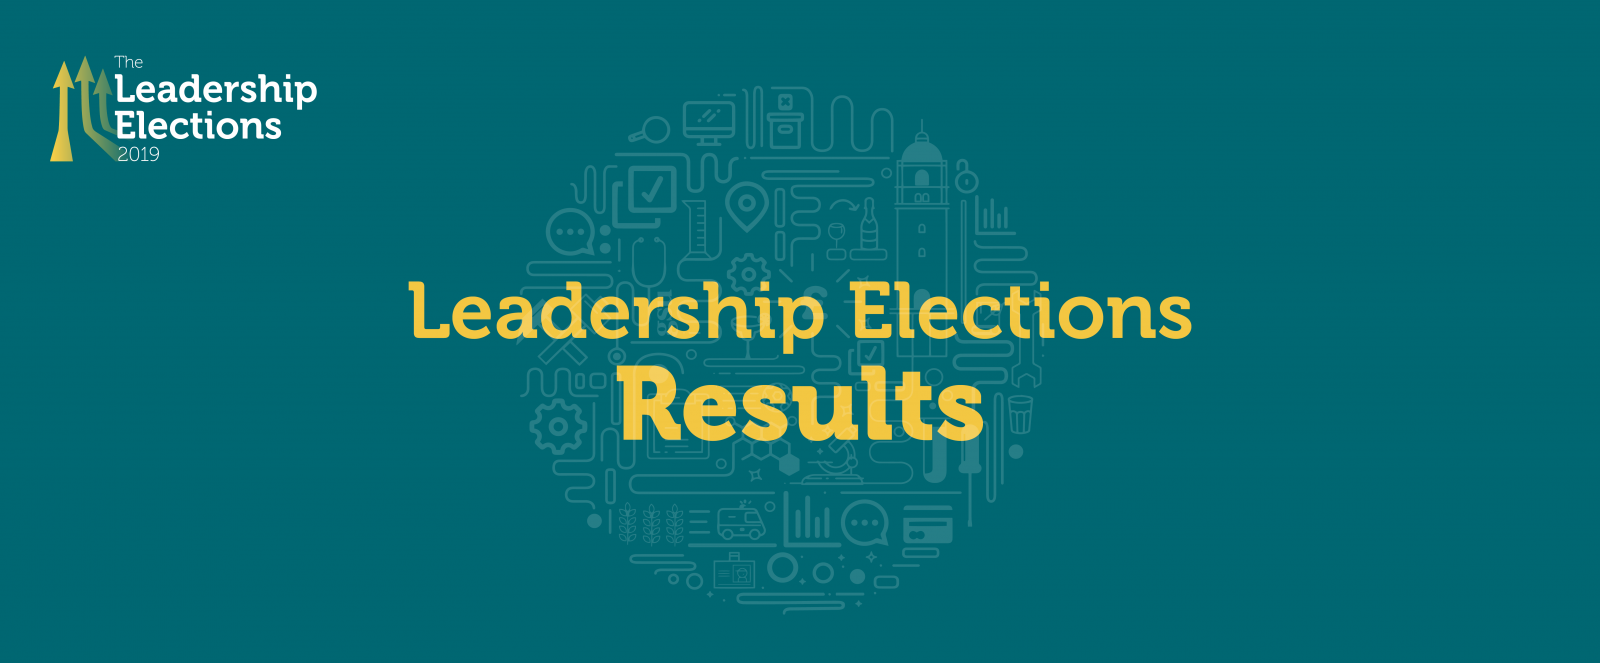 16f6a32ab3ecf1 This year saw a record number of voters and votes cast for the 774 position  on ballot. See the full results here. For voting statistics ...